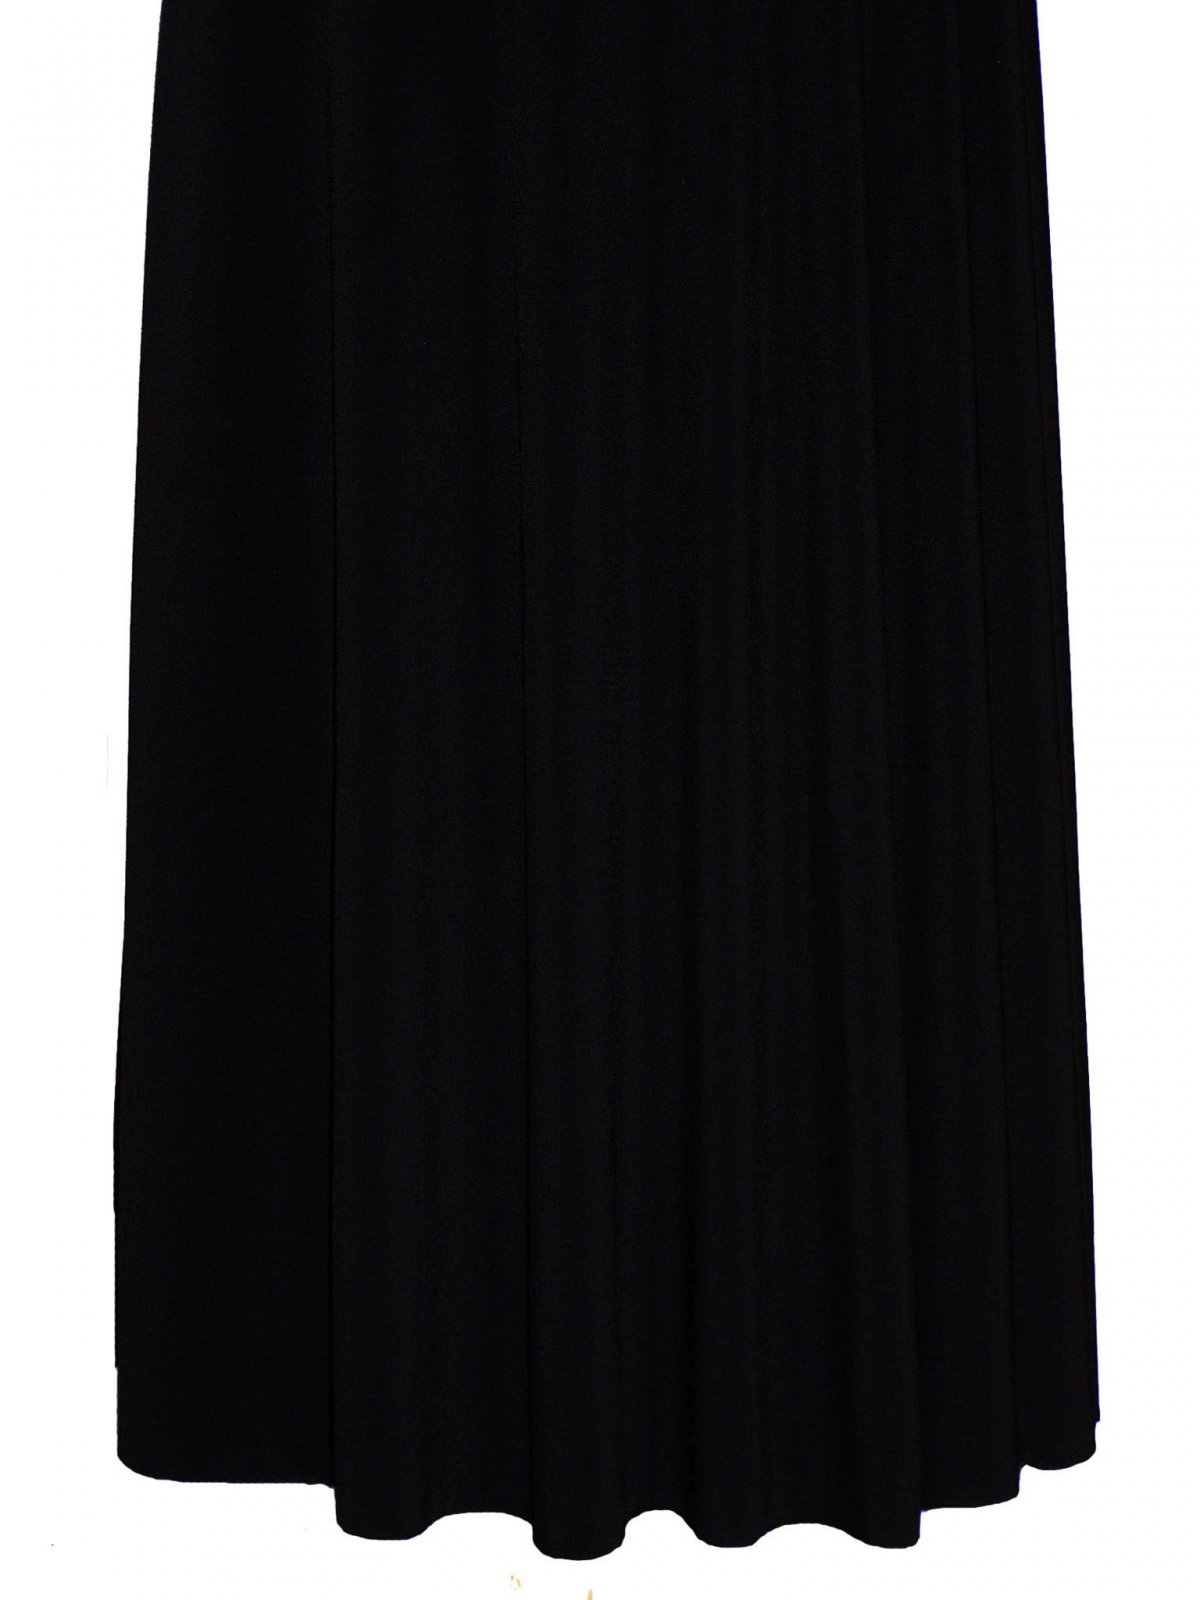 Valentina One Size Skirt (Multiple Colors)